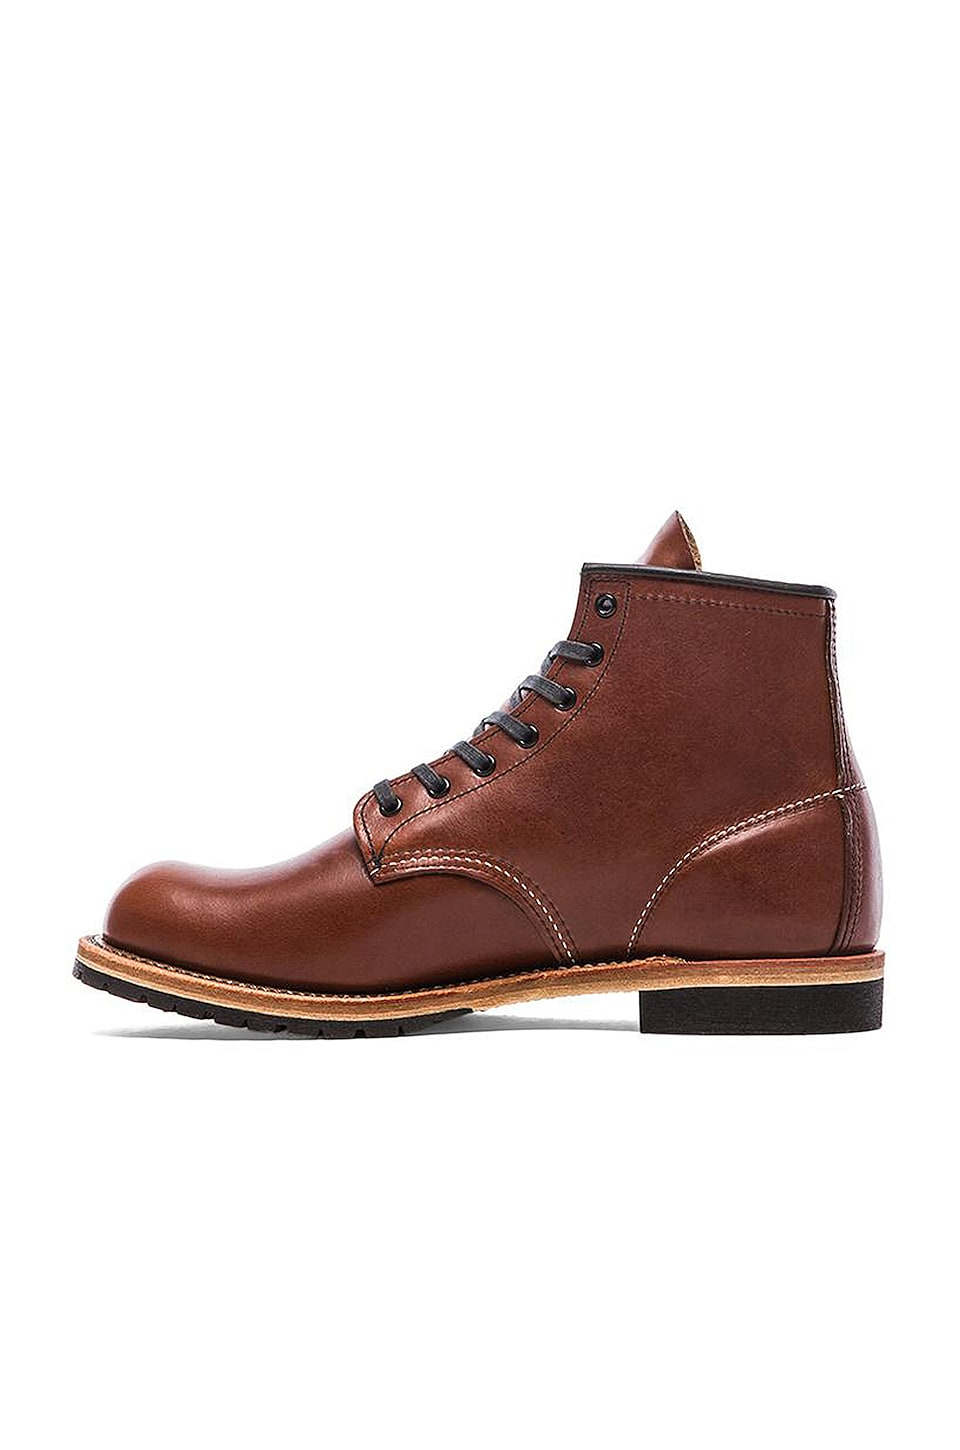 Red Wing Shoes Beckman 6